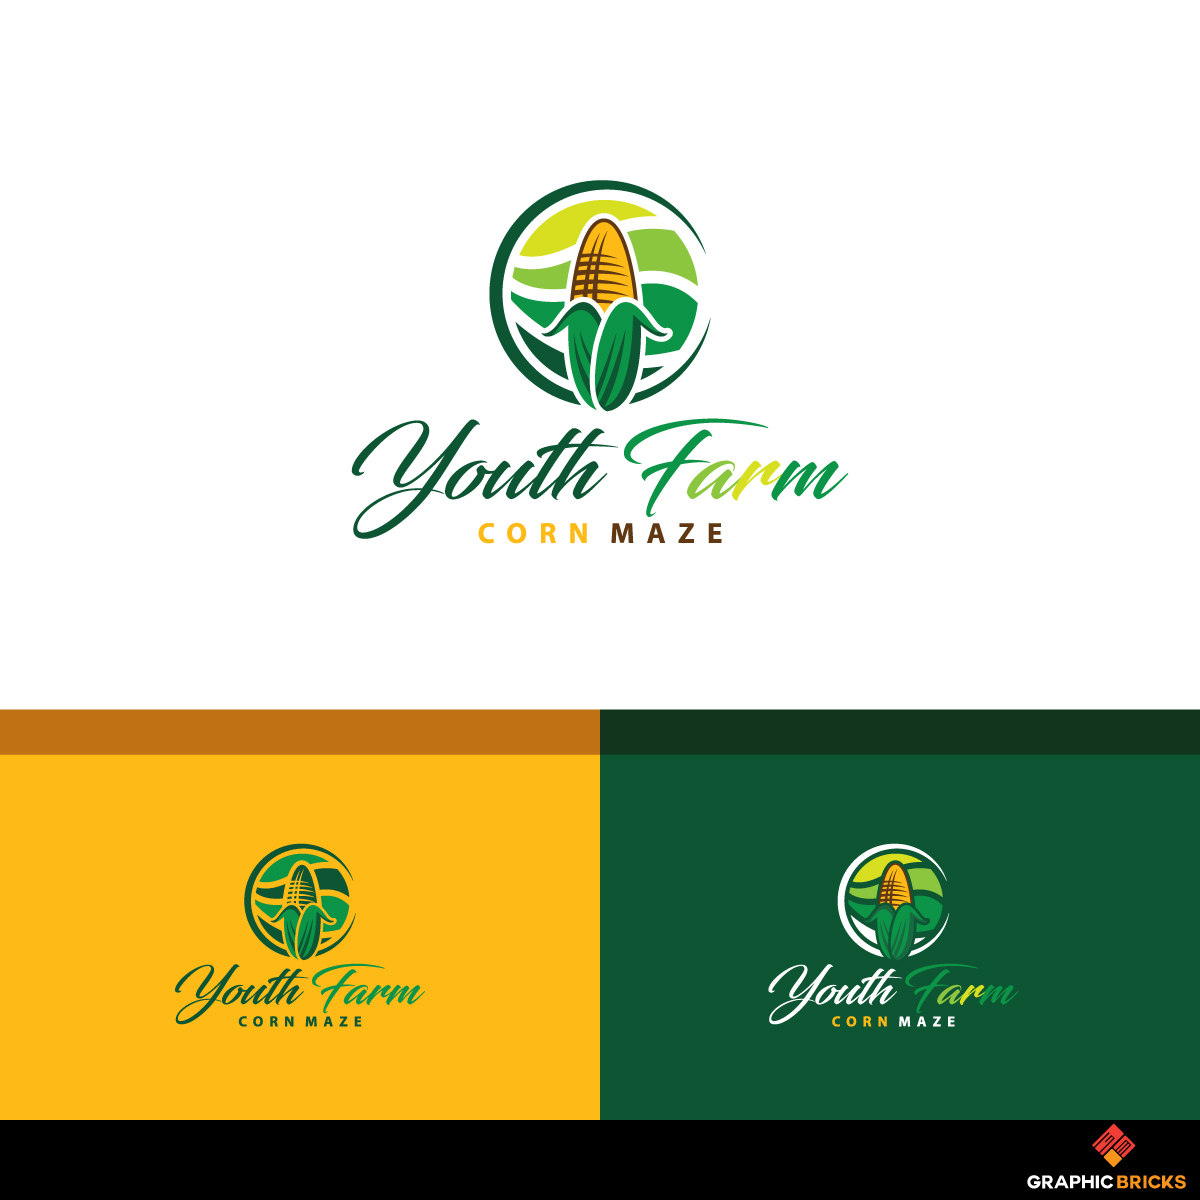 logo design for youth farm corn maze by logo no 1 design 19318196 logo design for youth farm corn maze by